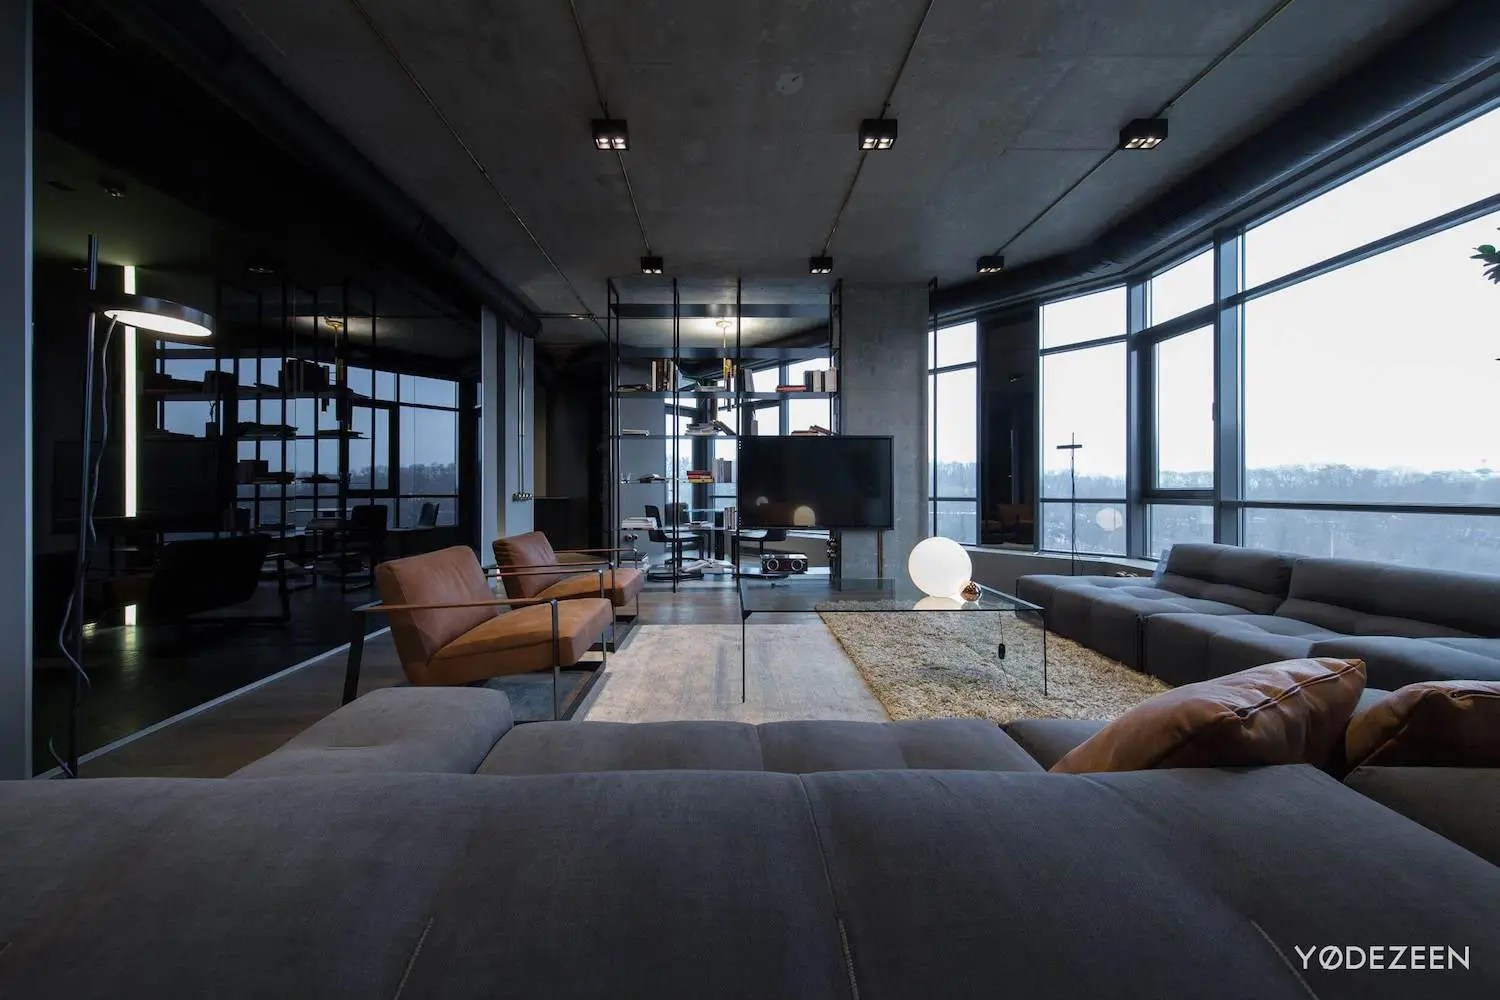 Schlafzimmer Modern Apartment In Concrete, Dark Surfaces And Dramatic Lighting